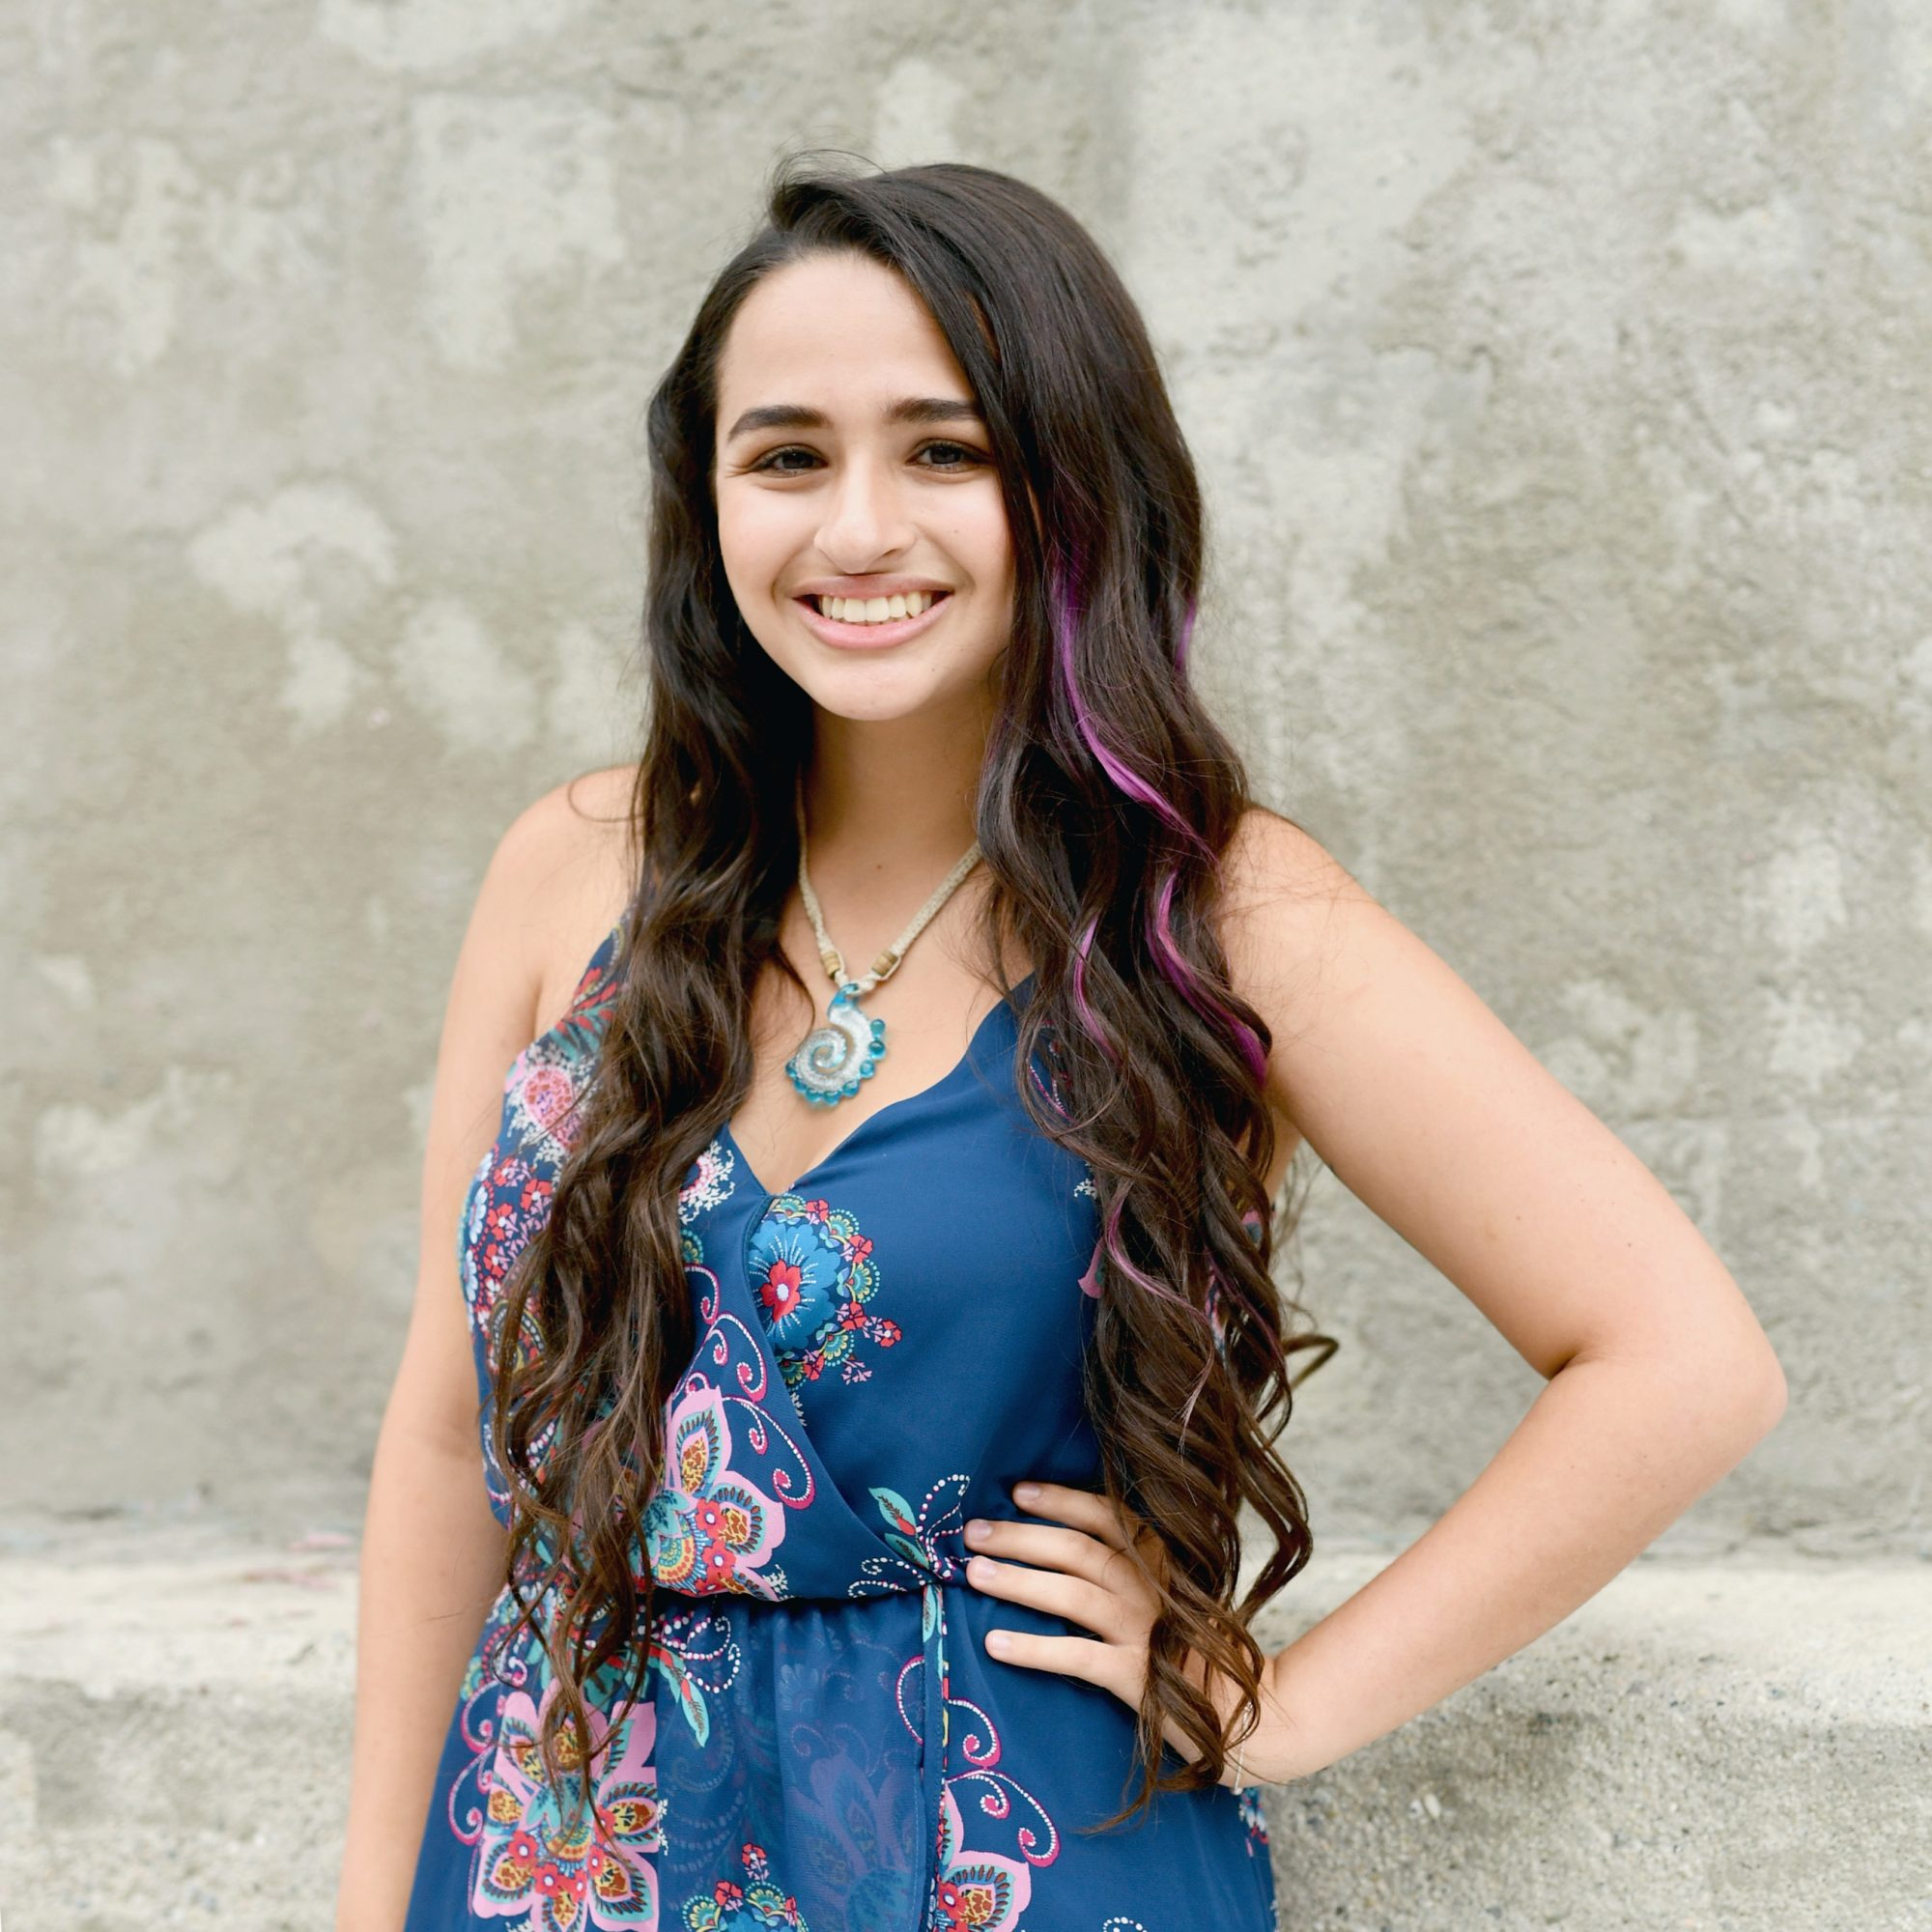 Jazz Jennings Prepares for Gender Confirmation Surgery with a 'Farewell to Penis' Party